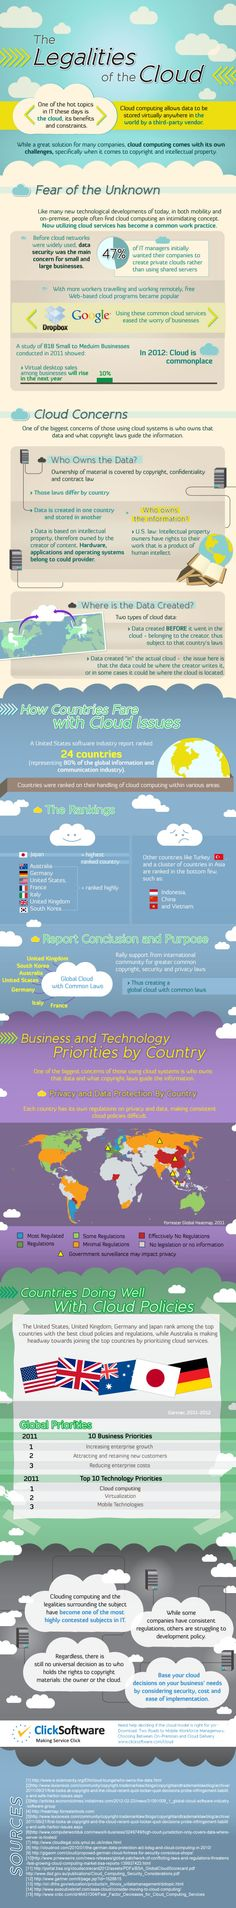 The Legalities of the Cloud [Infographic]